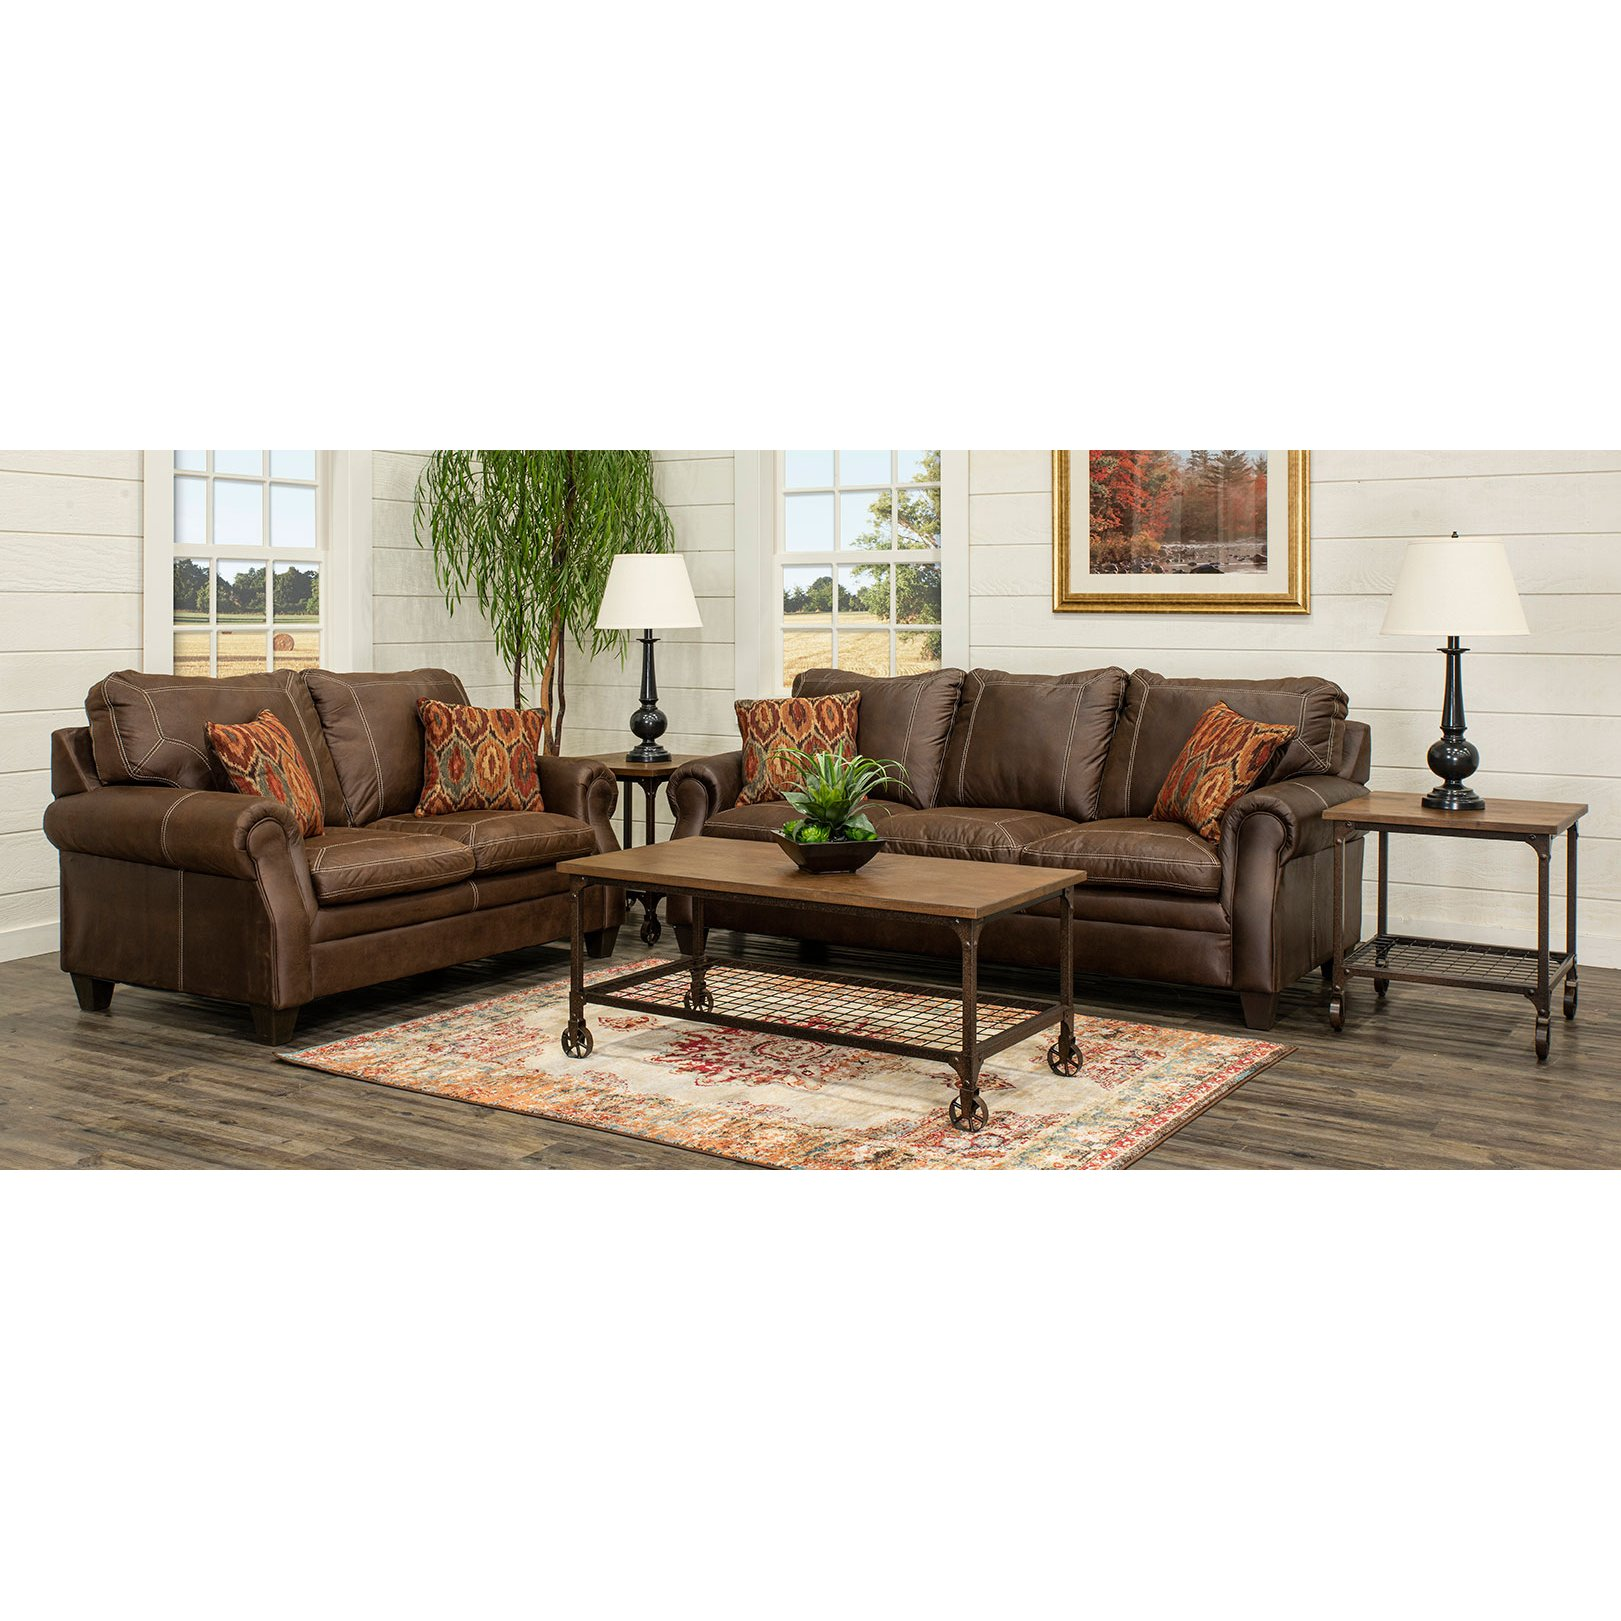 reclining room couch set africa blue awful chocolate living sofa design brown loveseat ideas and photo sets floral in home south fabric